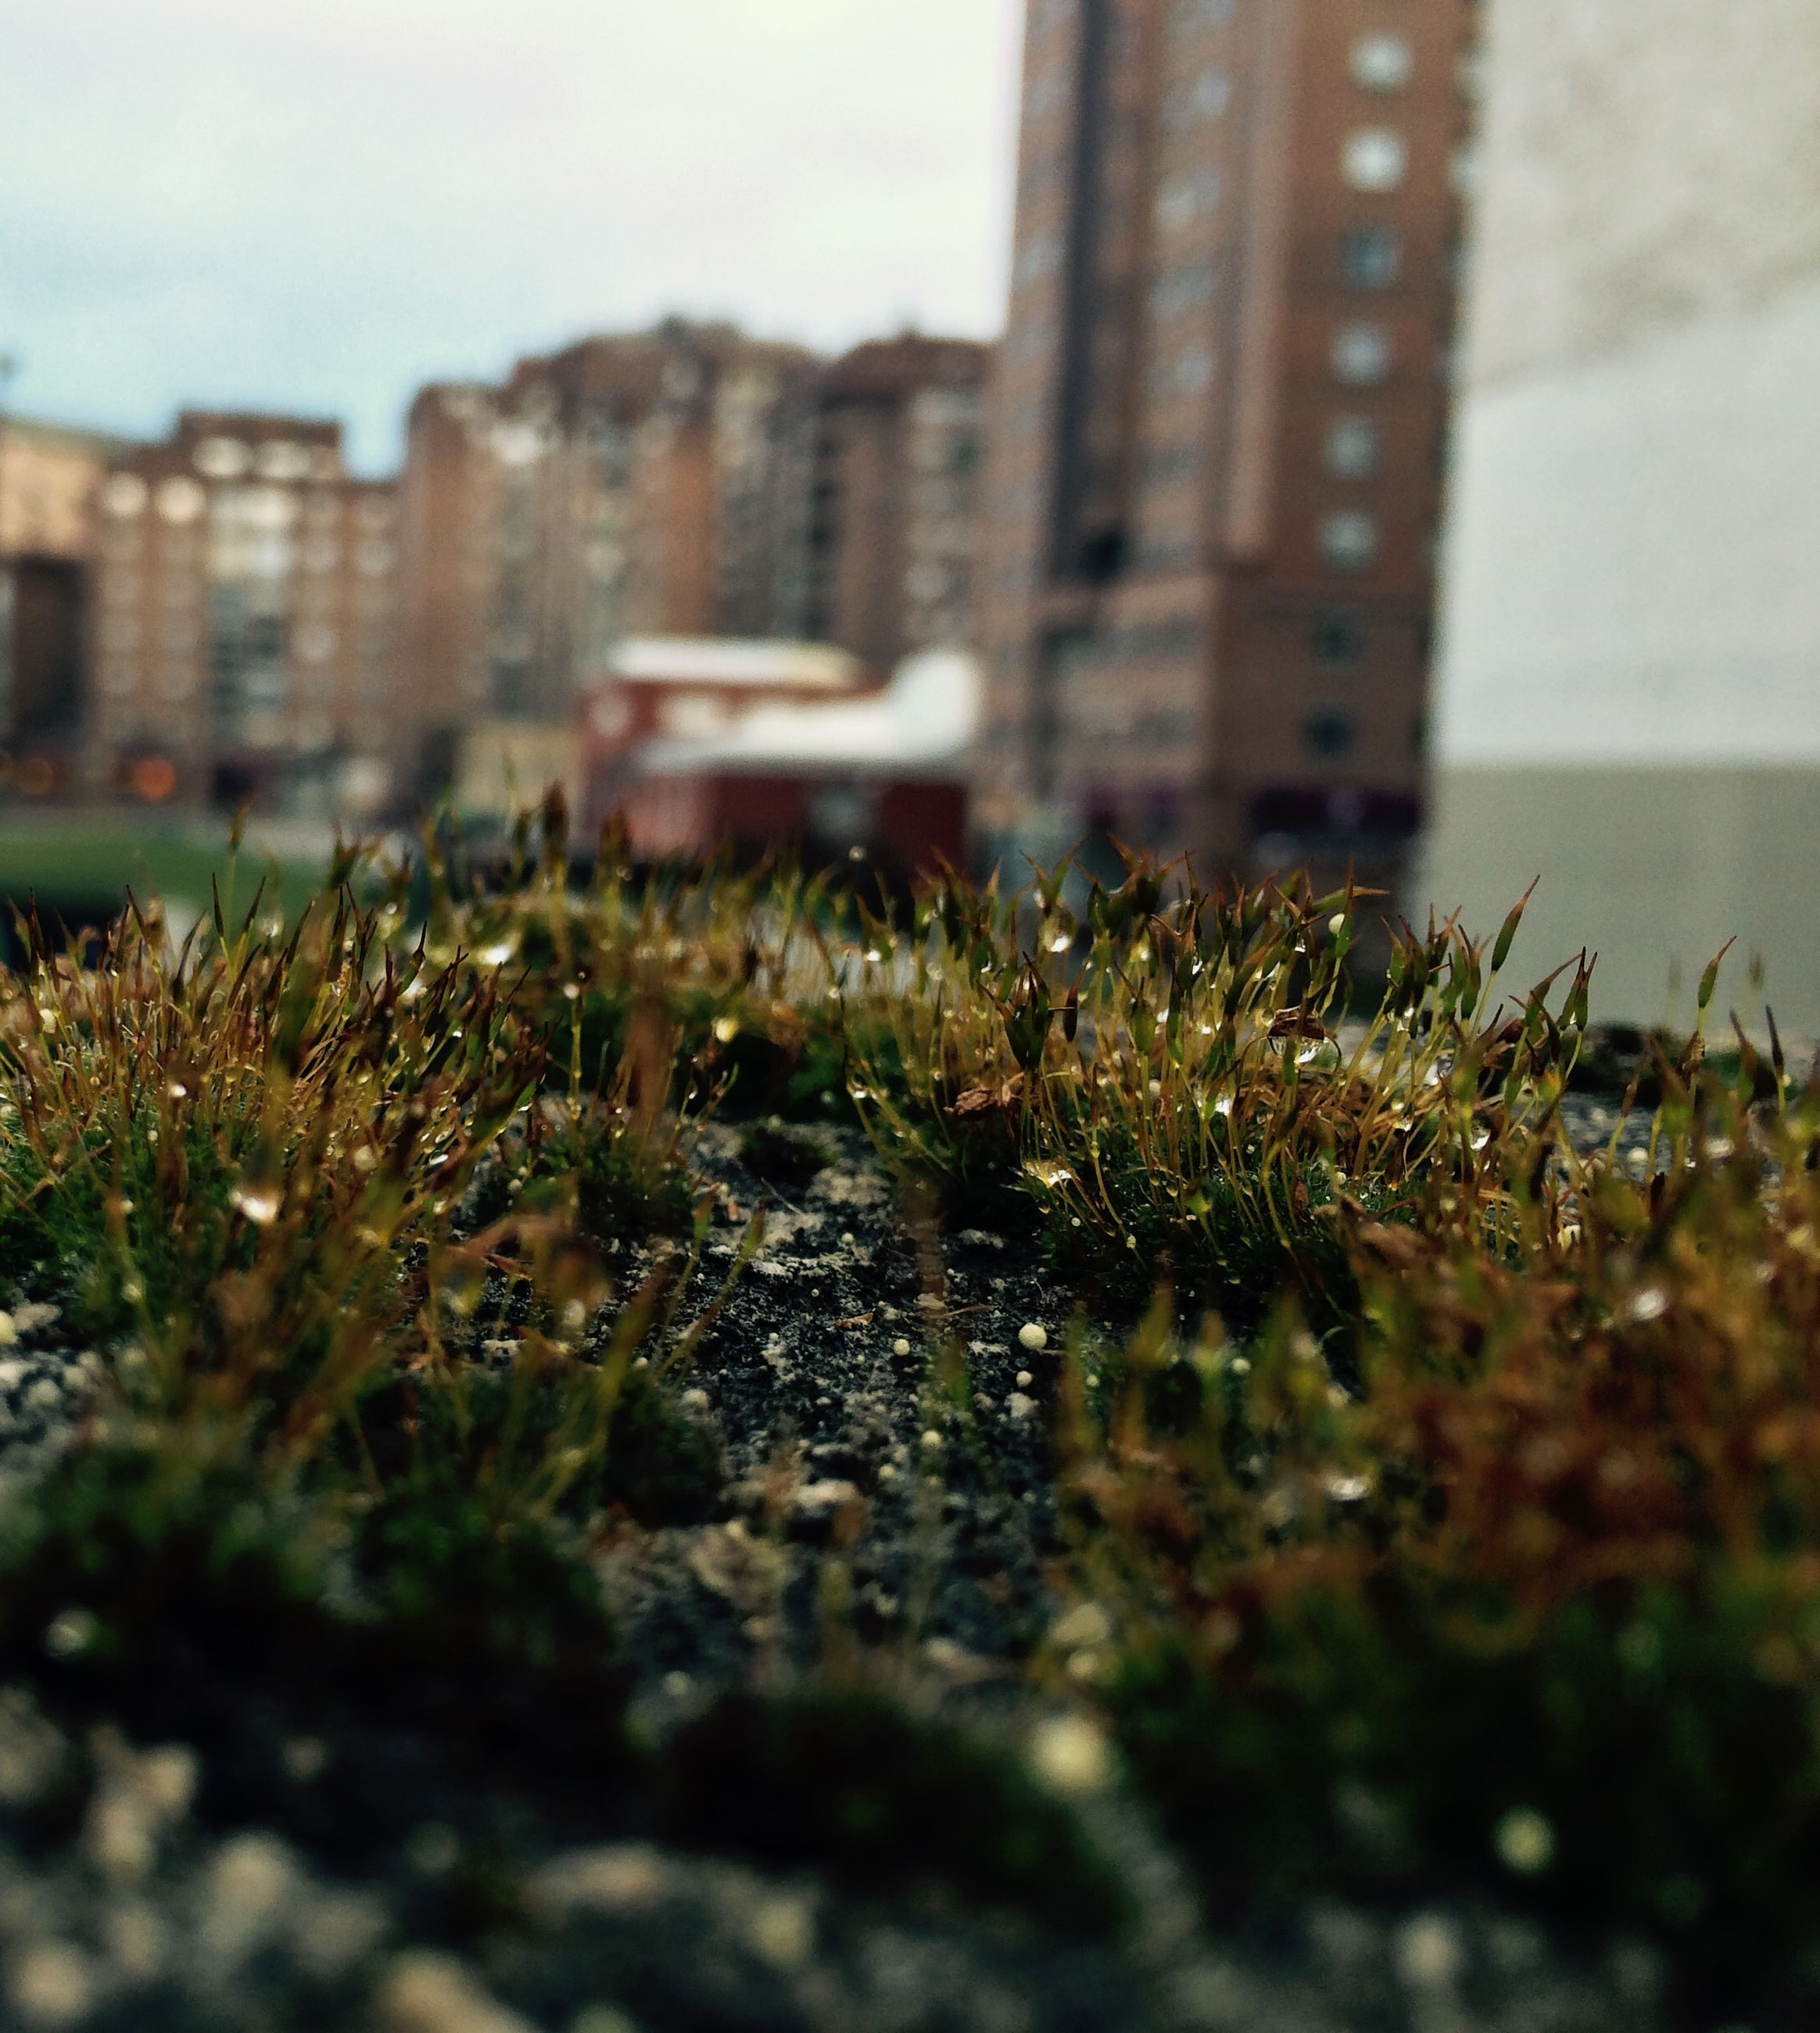 building exterior, architecture, built structure, selective focus, plant, growth, surface level, house, grass, field, nature, focus on foreground, residential structure, day, residential building, outdoors, no people, focus on background, growing, close-up